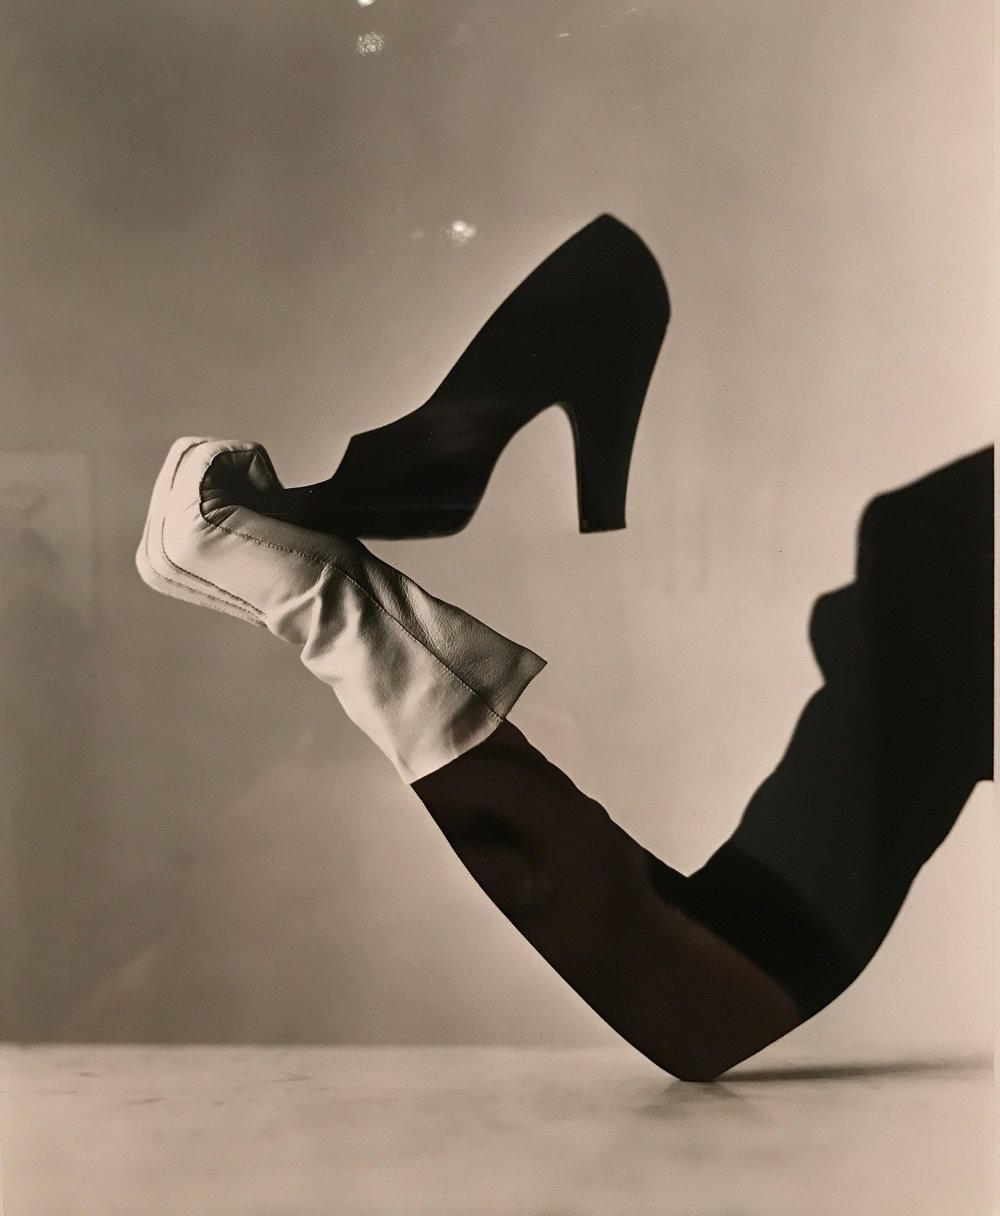 Irving Penn, Glove and Shoe, 1947